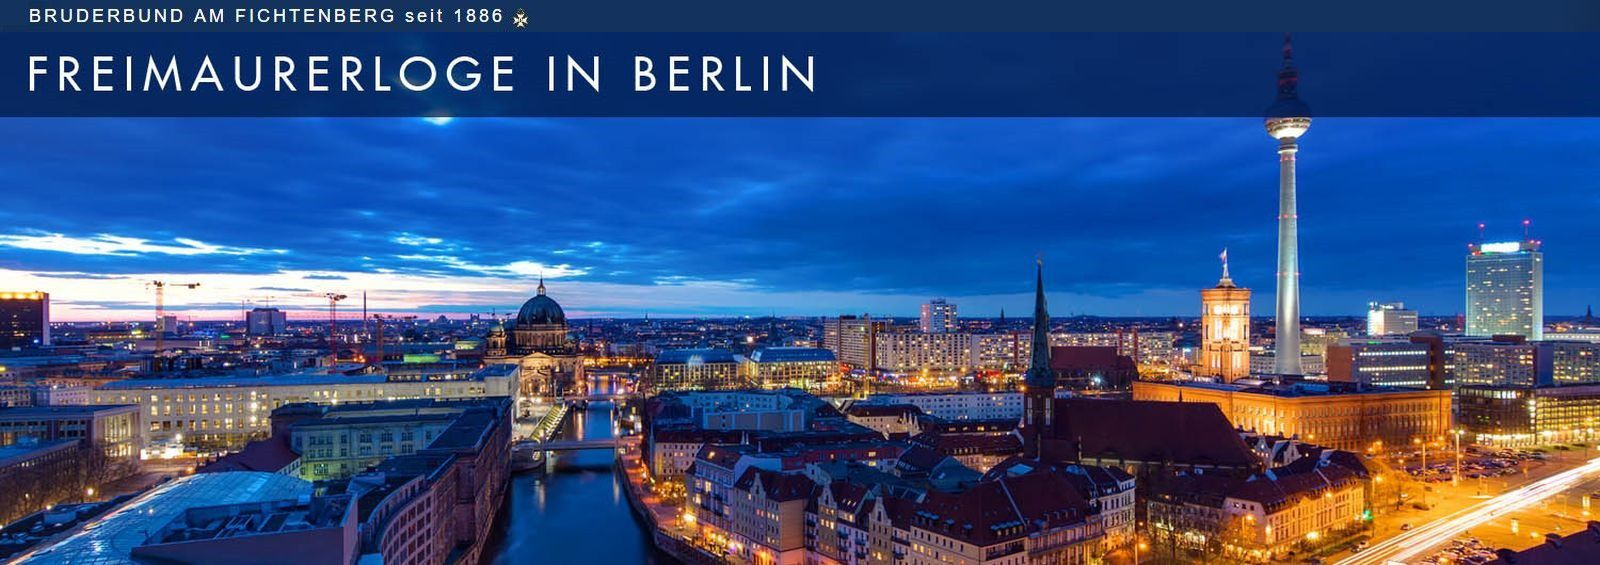 header berlin neu